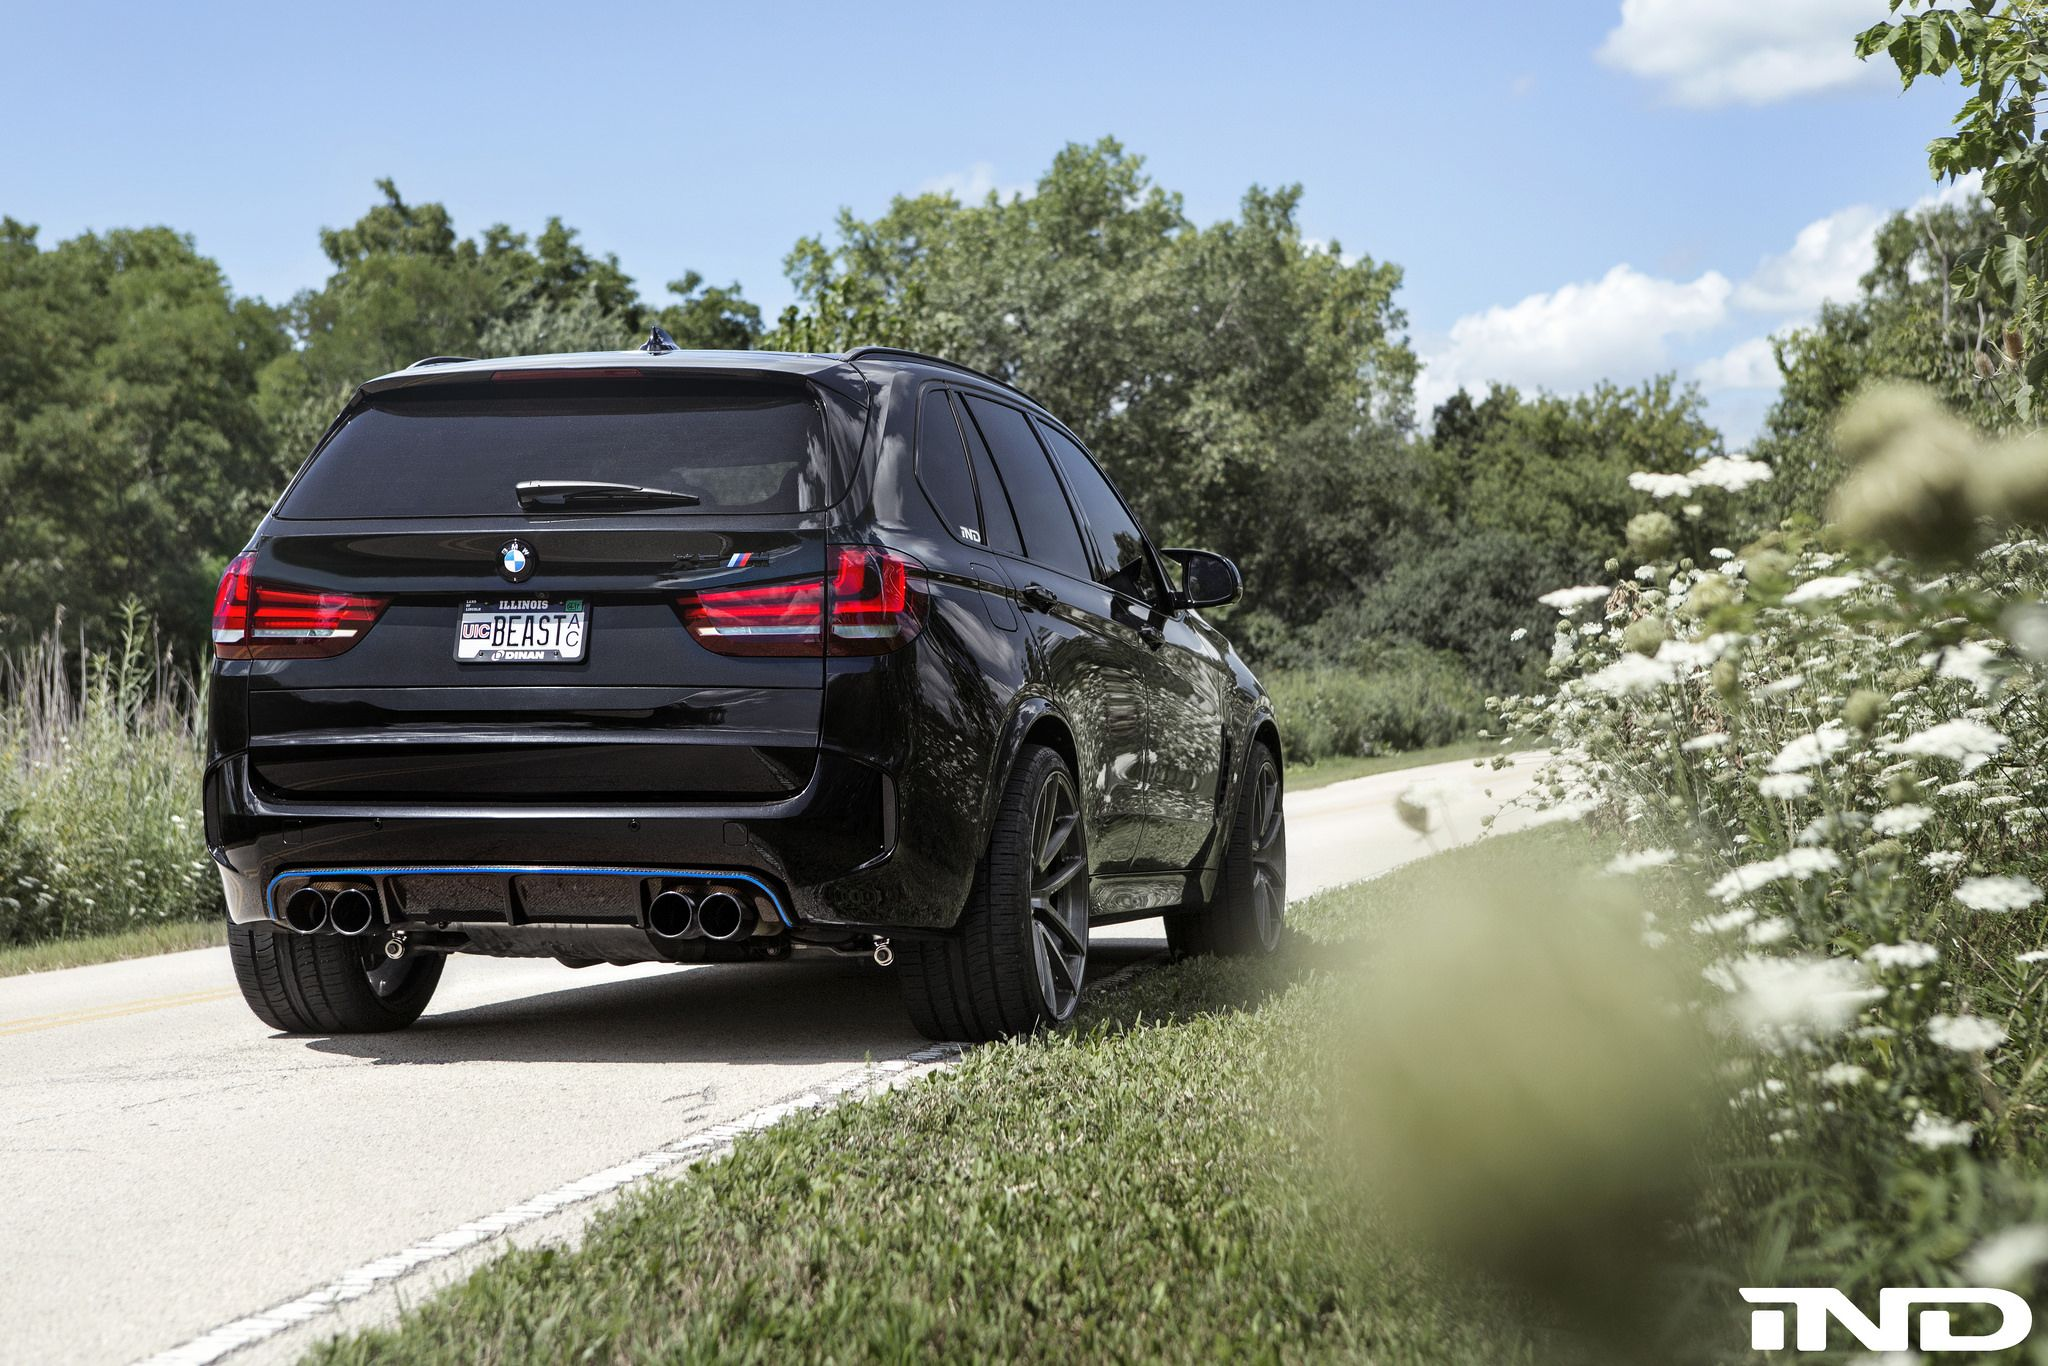 Carbon Black Metallic BMW X5 With Vossen VPS 302 Forged Wheels    Http://www.bmwblog.com/2016/12/11/bmw X5 With Vossen Vps 302 Forged Wheels/  | Pinterest ...